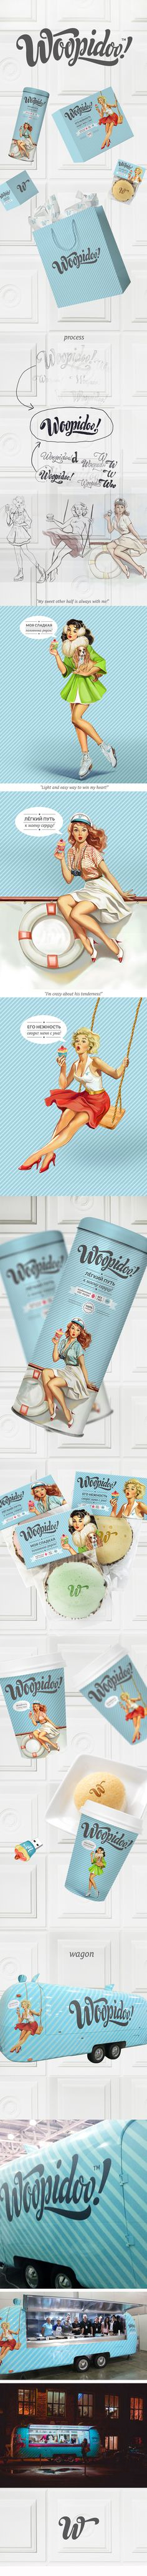 Woopidoo by Valeria Polubiatko #branding #packaging #design #pin-up #identity